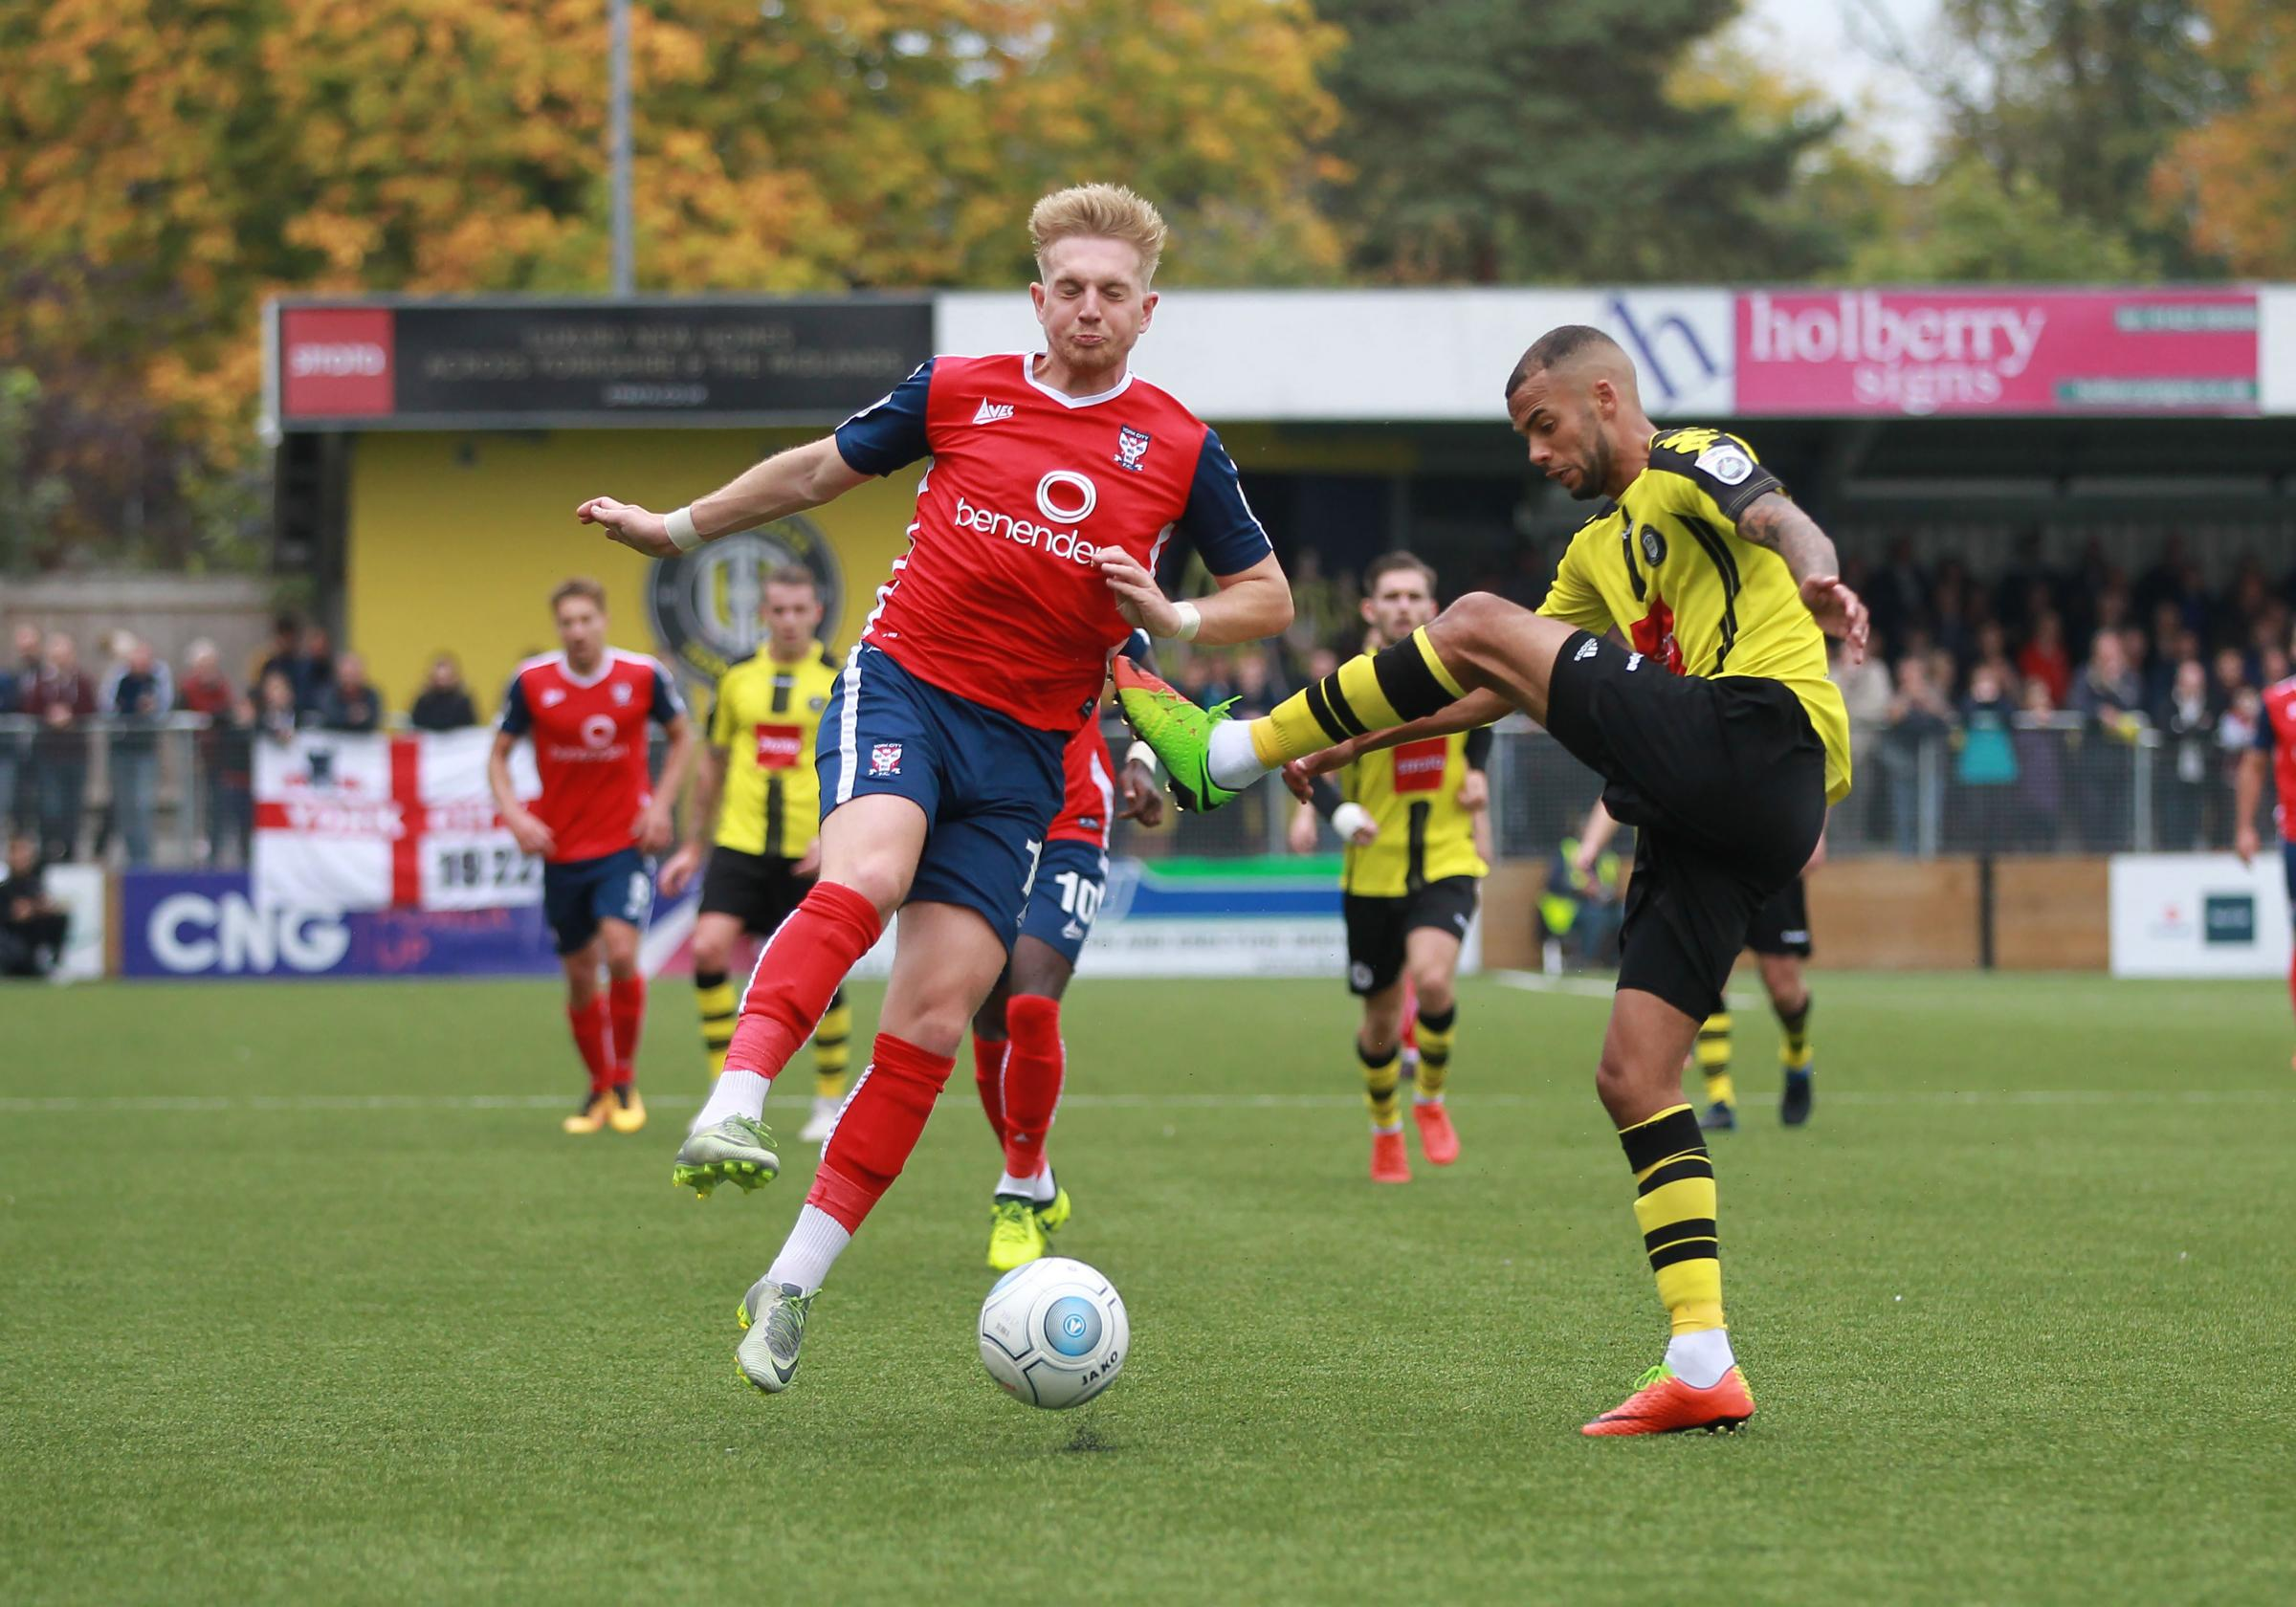 Harrogate Town�s Warren Burrell challenges York City's Louis Almond.Harrogate Town v York City . Vanararma National League  North clash held at The CNG Stadium on the 23/09/2017.Pic by Gordon Clayton.Football  Images are covered by DataCo  &am